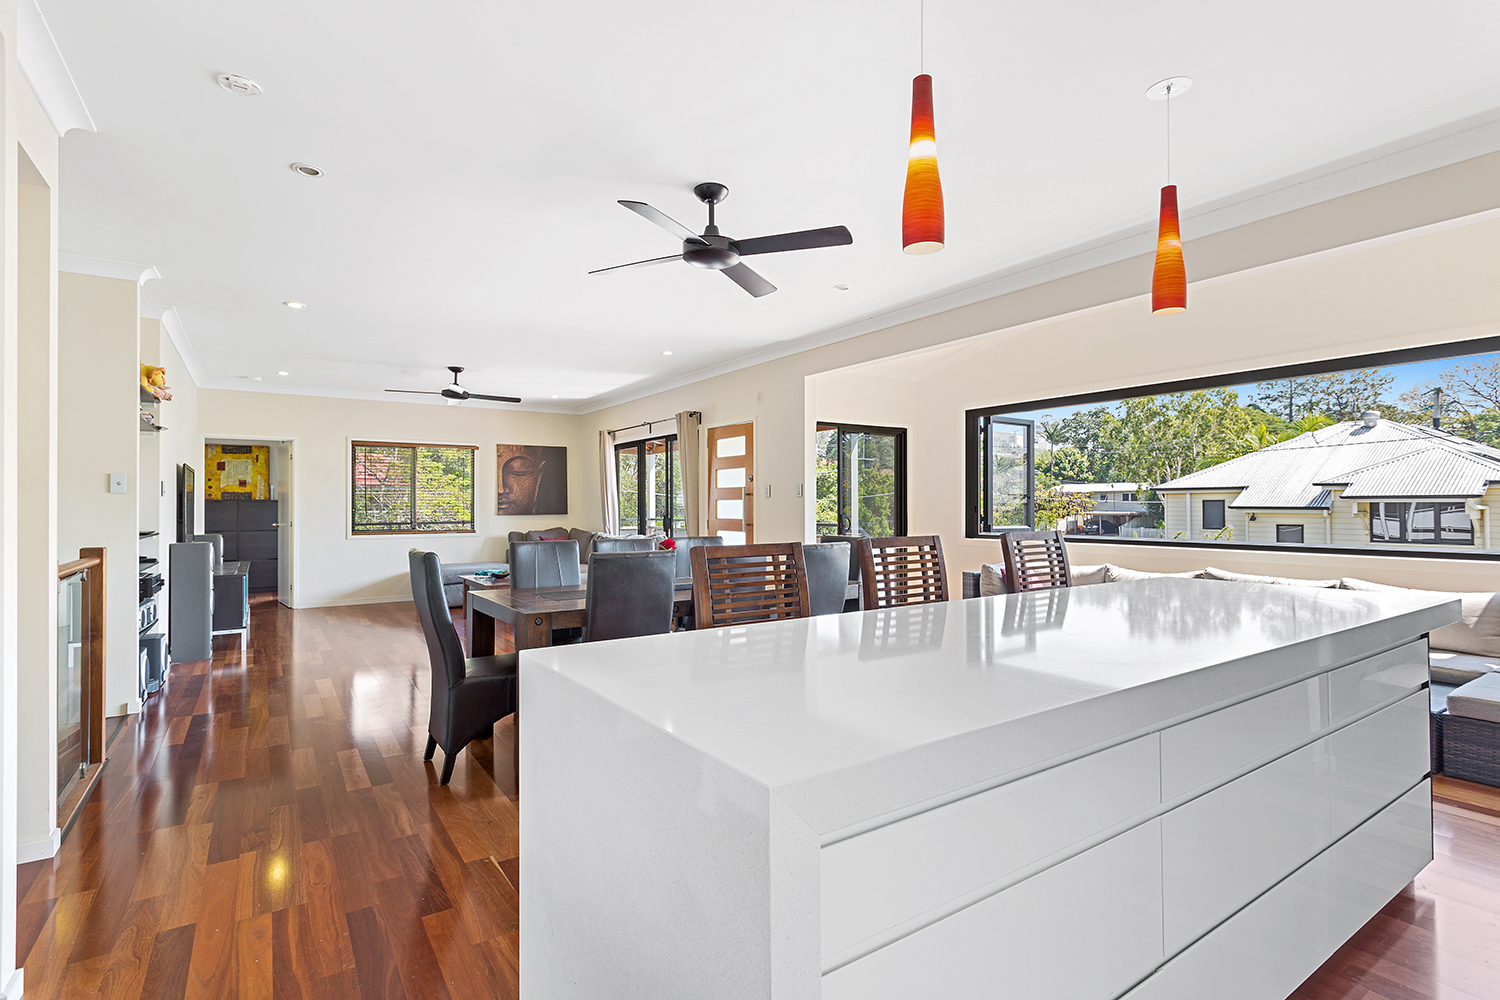 FLEXI HOMES - The Flexi Home range has been developed to suit contemporary Queensland households, providing flexibility to meet a family's changing needs throughout its lifetime. The designs specifically consider a degree of self-sufficiency with an ensuite and a small kitchenette, a separate entry and sitting area for privacy.